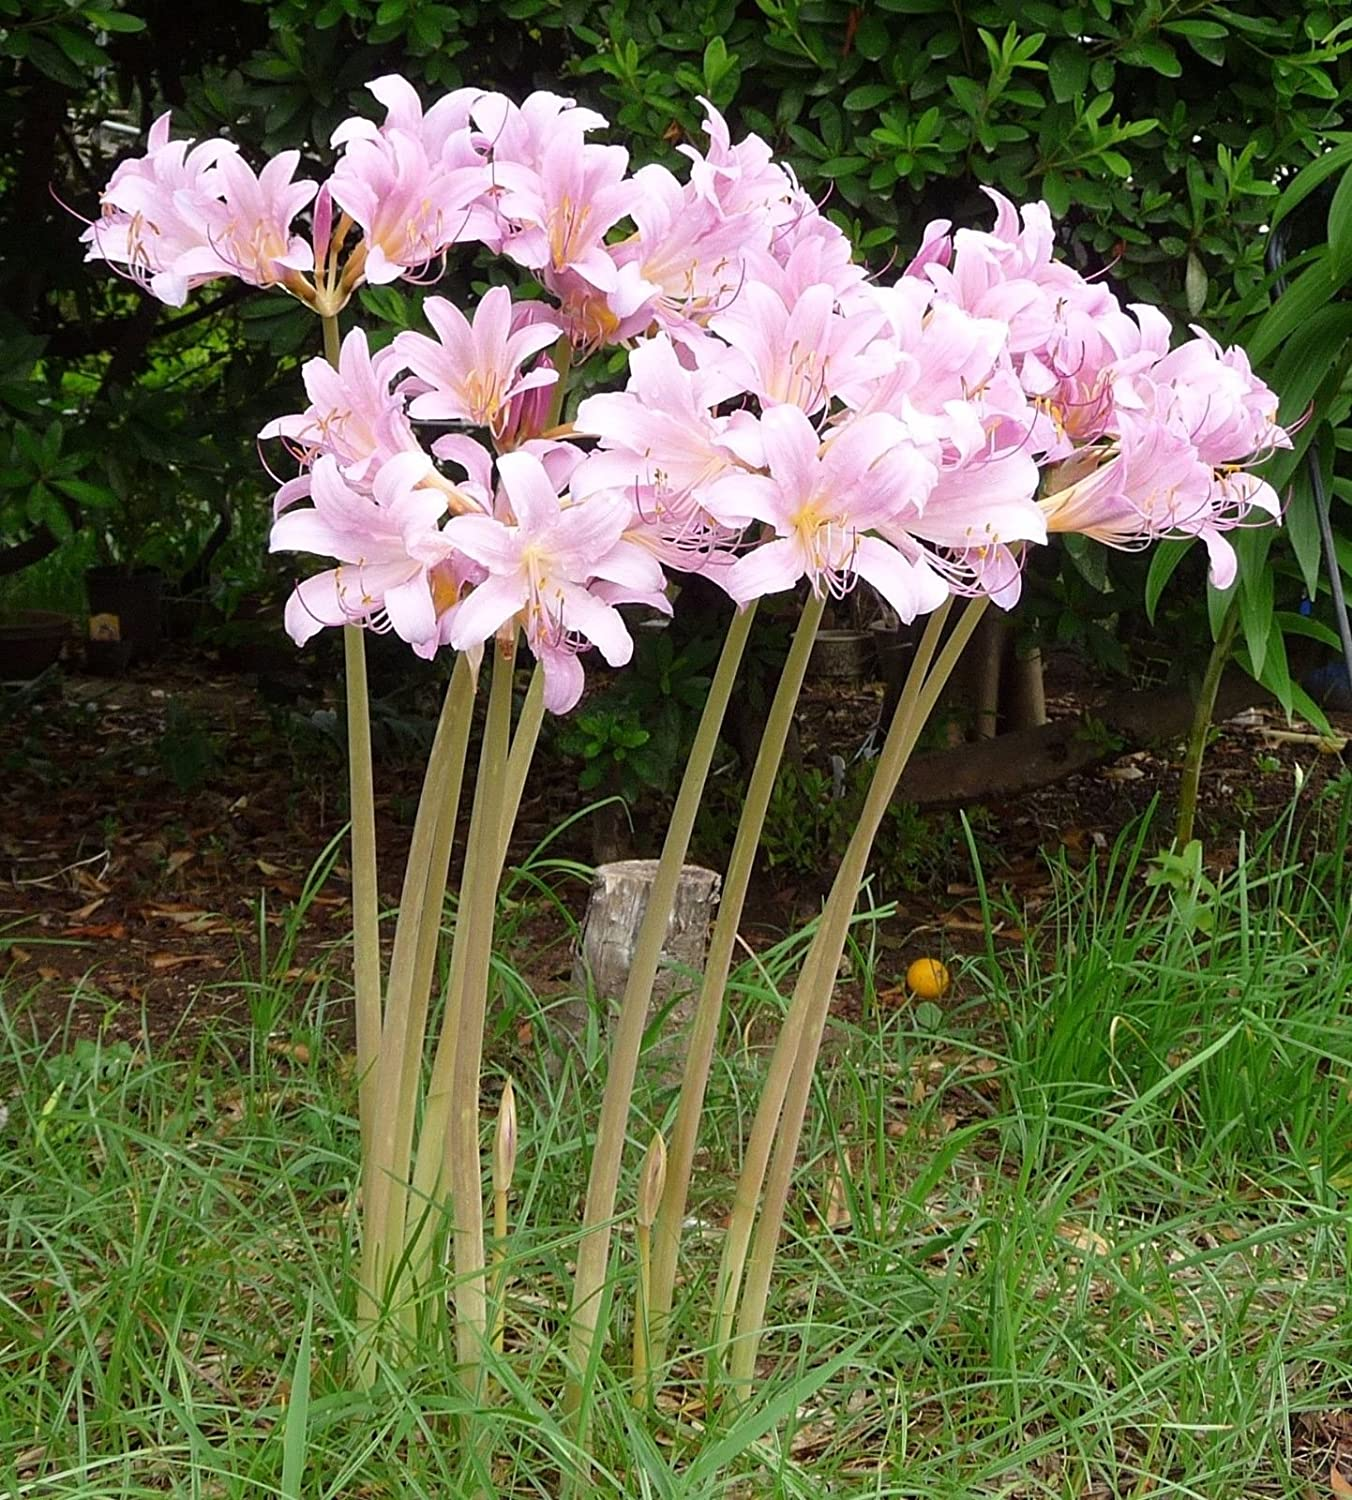 Amazon.com : 3 Bareroot Pink Spider Lily/ Surprise Lily/ Naked Lady Lily/  Resurrection Lily/ : Garden & Outdoor